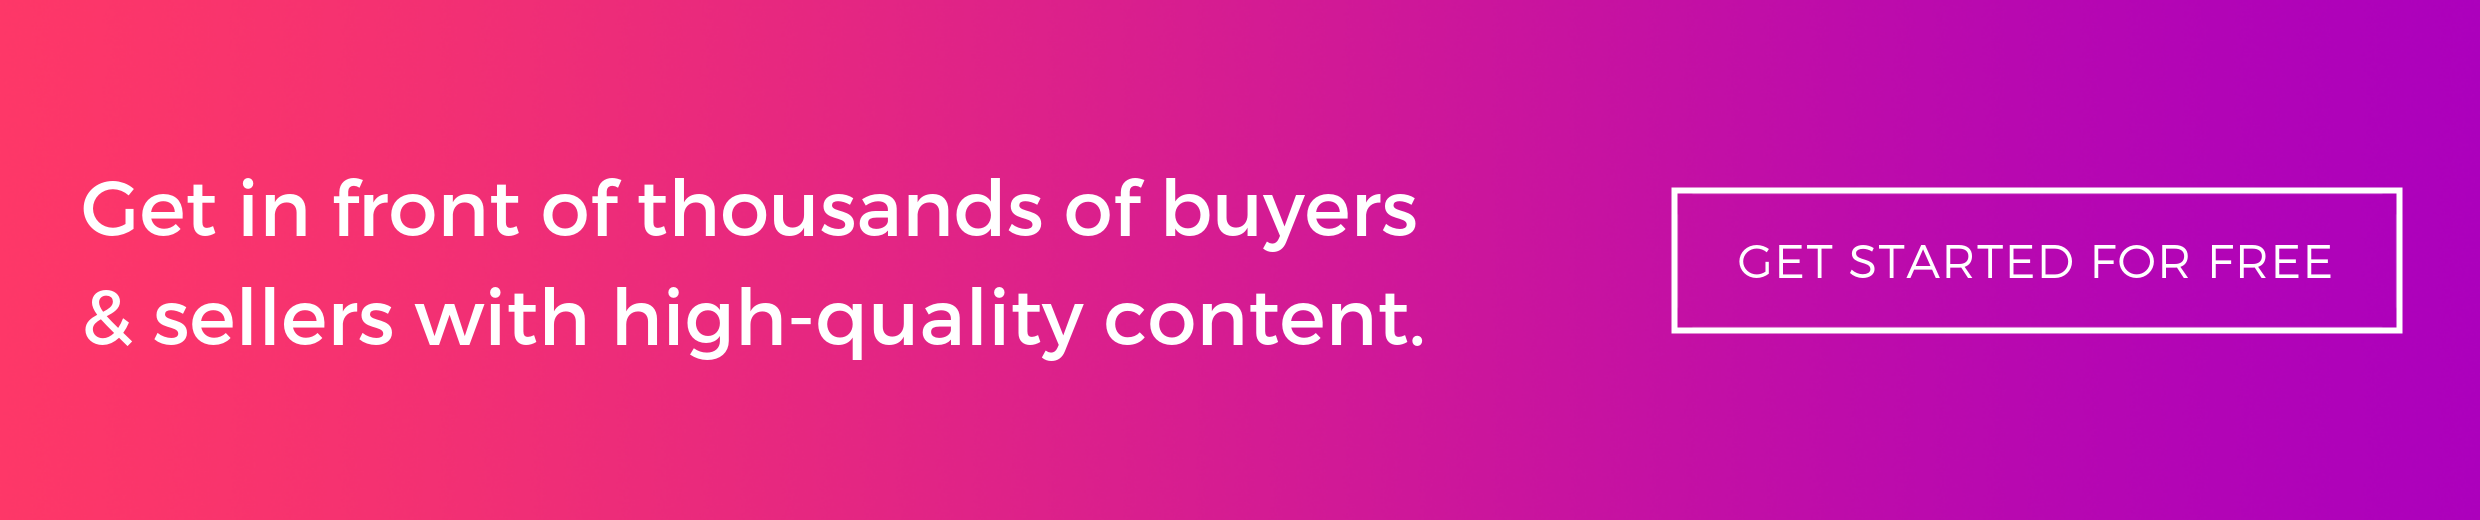 Get in front of thousands of buyers and seller with quality content